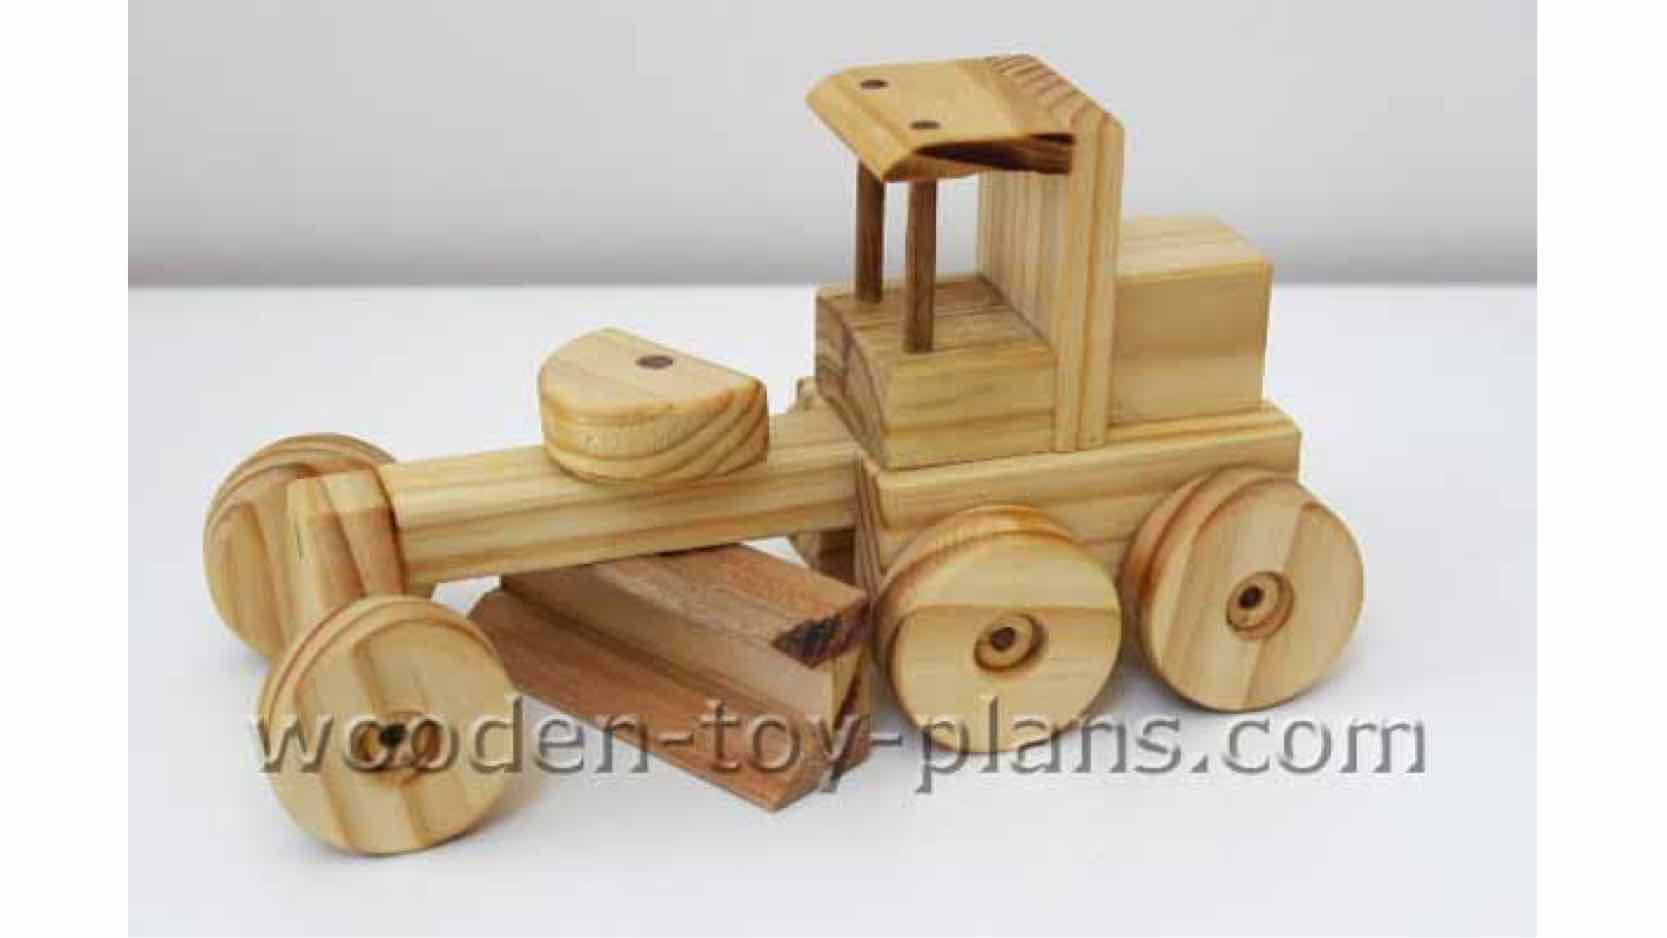 construction toys,wooden,road grader,free woodworking plans,projects,diy,childrens,childs,kids